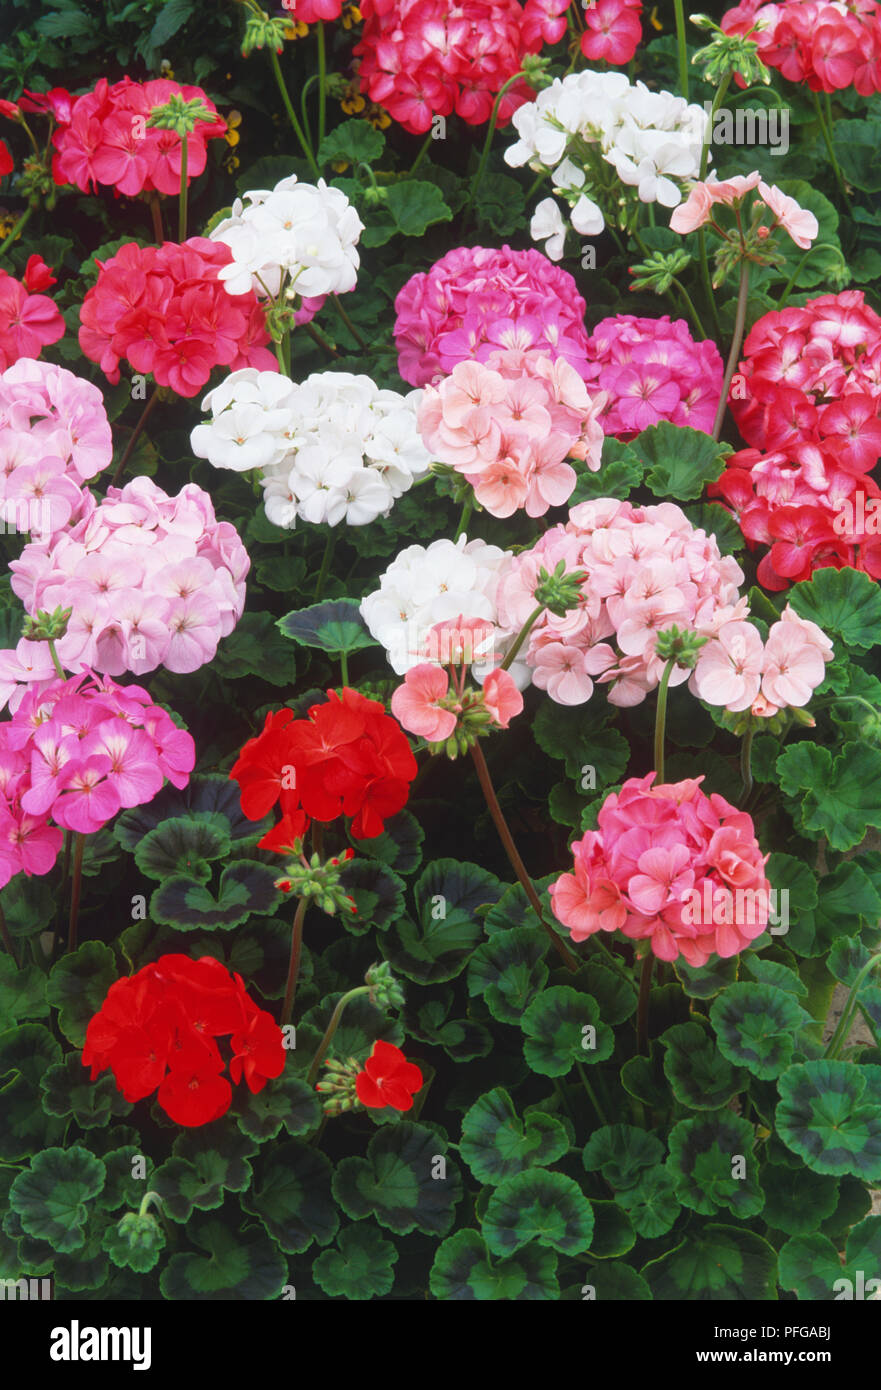 Pelargonium Horizon Series Umbel Like Clusters Of Pink White And